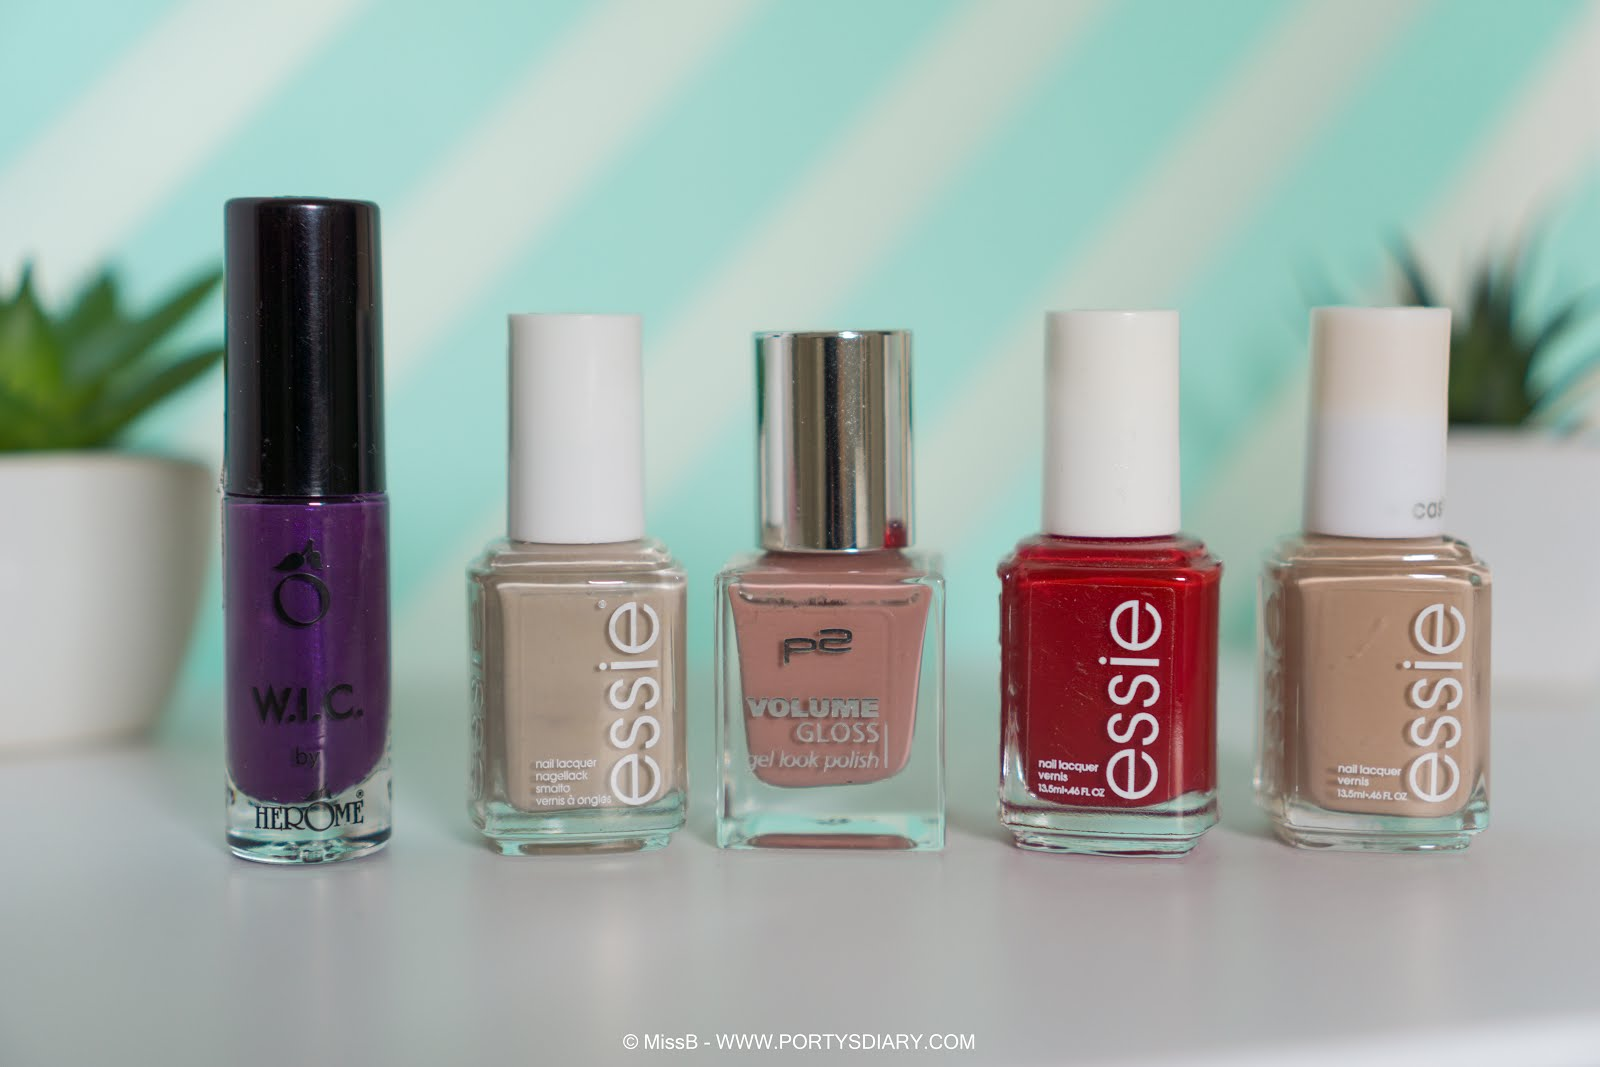 Herôme - Lisbon, Essie - Sand Tropez, P2 - Cute Girl Essie - a list, Essie - all eyes on nudes